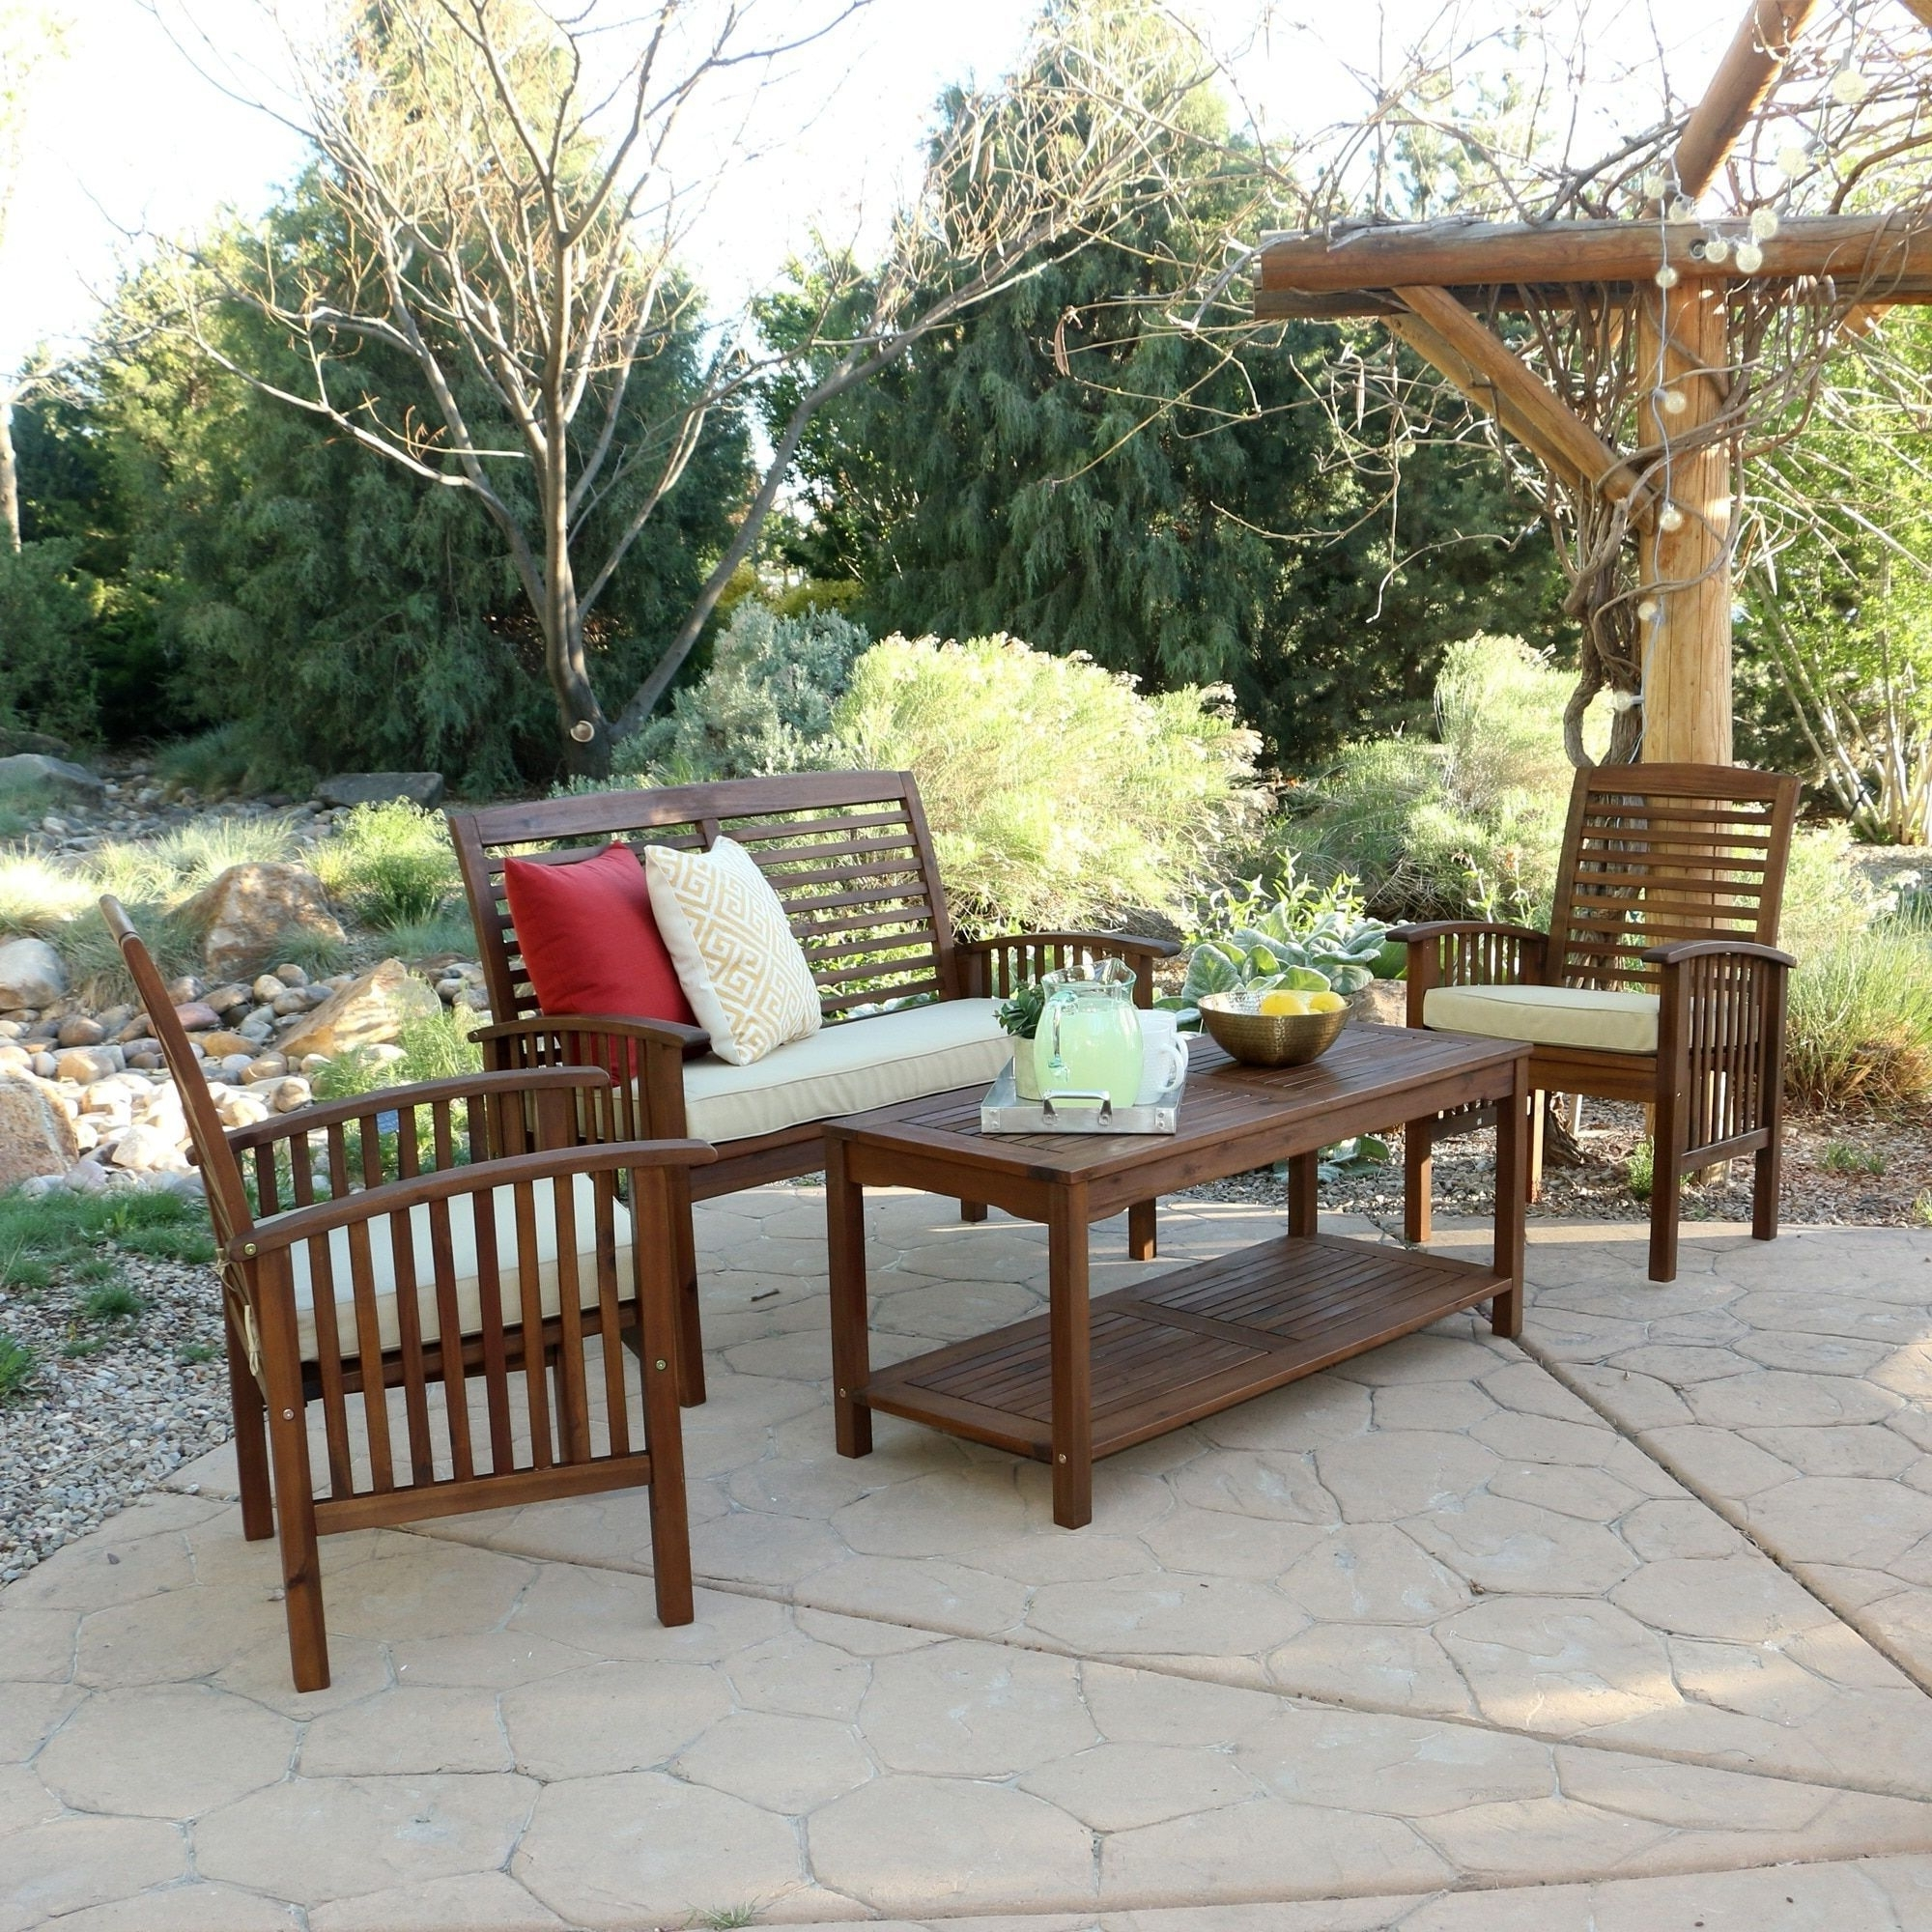 4 Piece Acacia Wood Patio Conversation Set, Brown, Size 4 Piece Sets With Regard To Famous Wood Patio Furniture Conversation Sets (View 2 of 20)